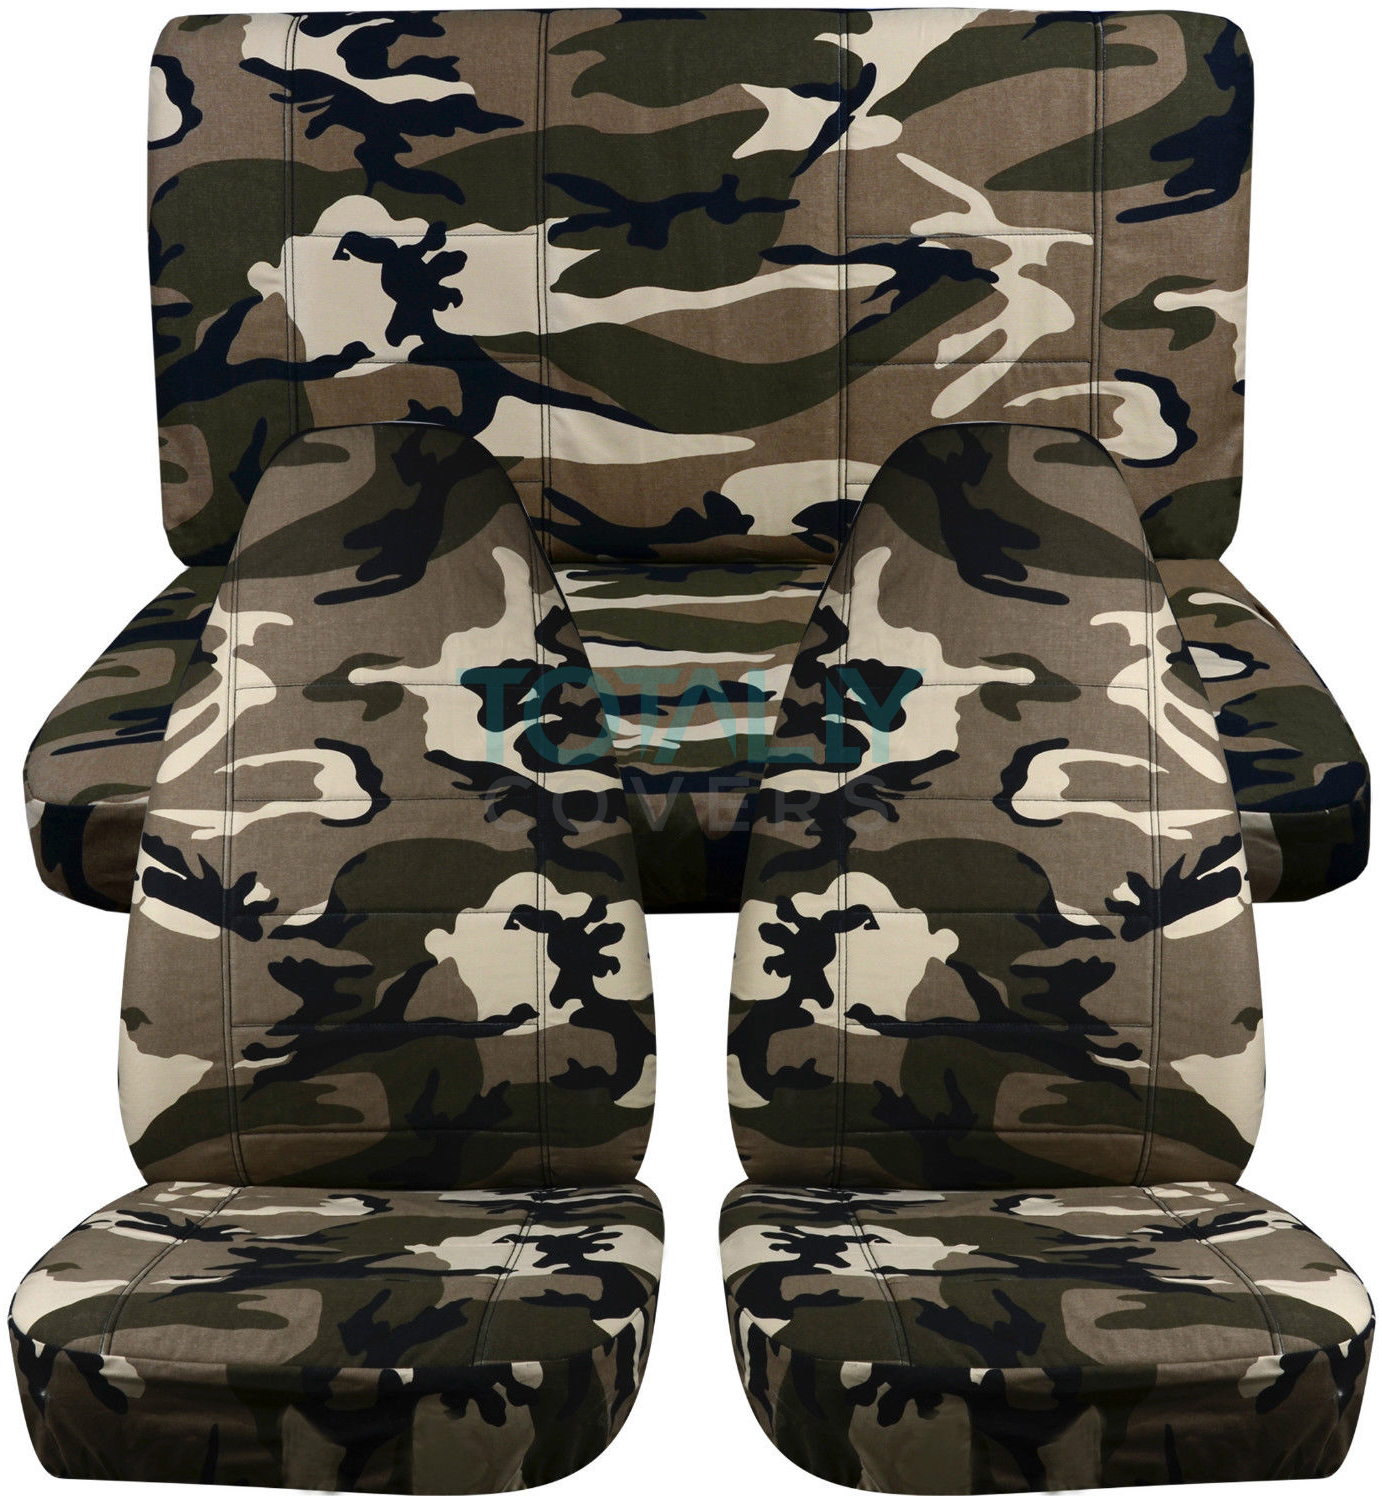 ... Jeep Wrangler Tan and Beige Camo Seat Covers ...